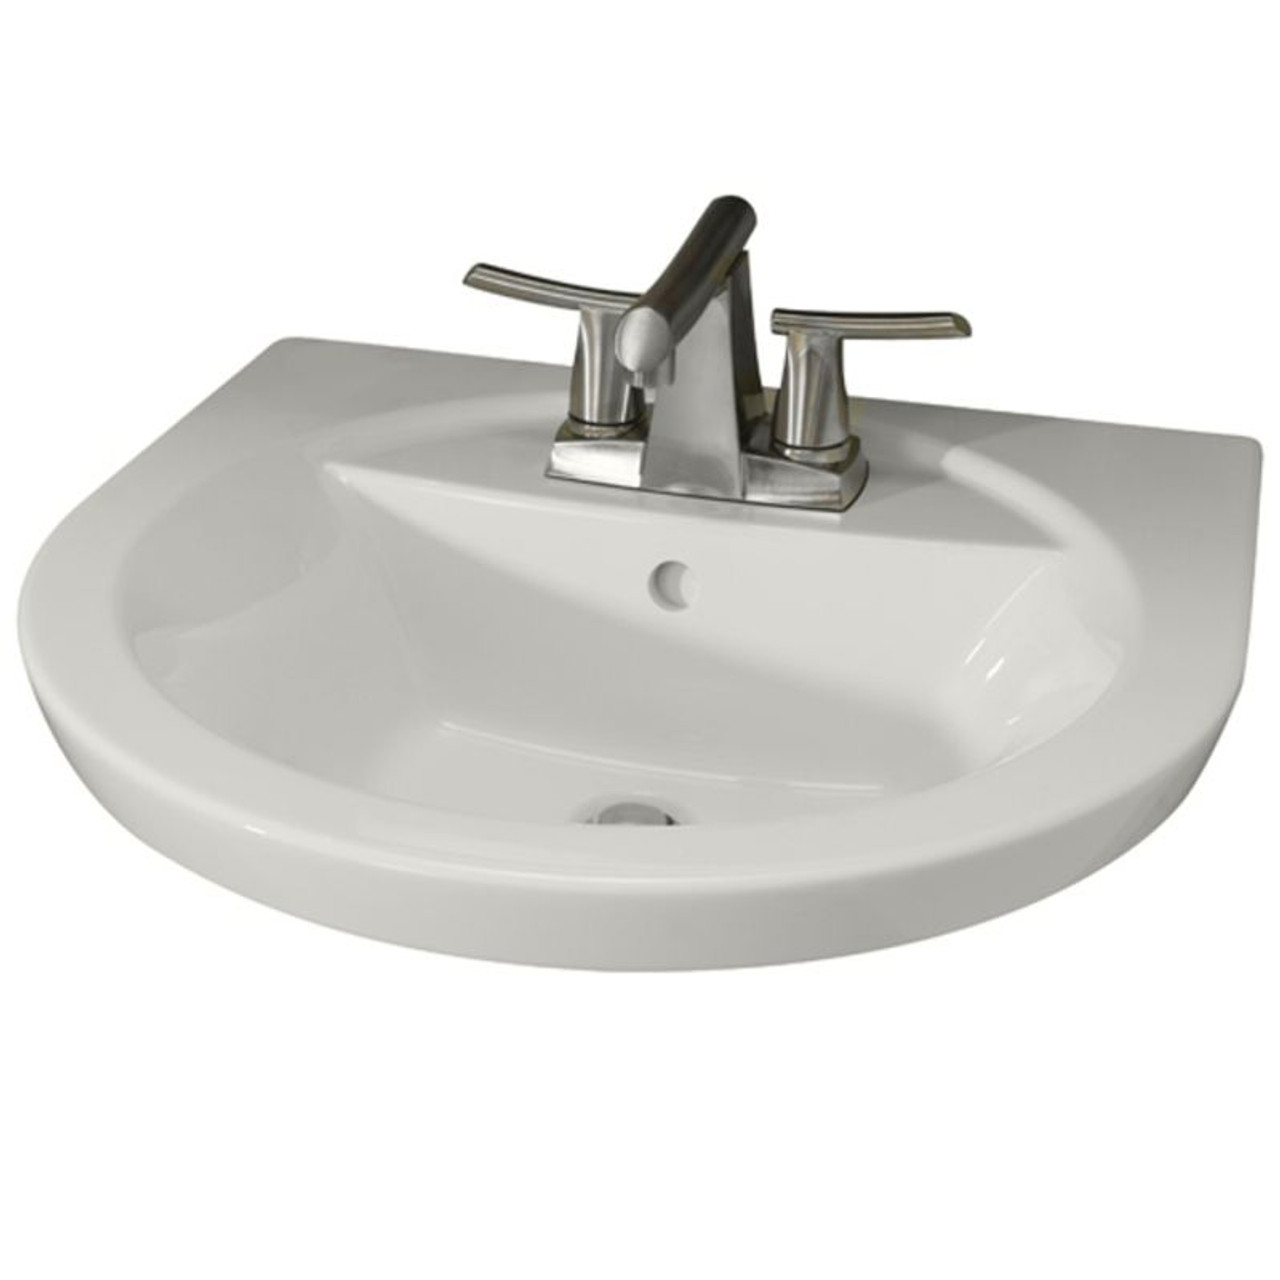 American Standard 0403.004.020 Tropic Petite Above Counter Or Drop Lavatory  Sink With 3 Faucet Holes (4 Centers)